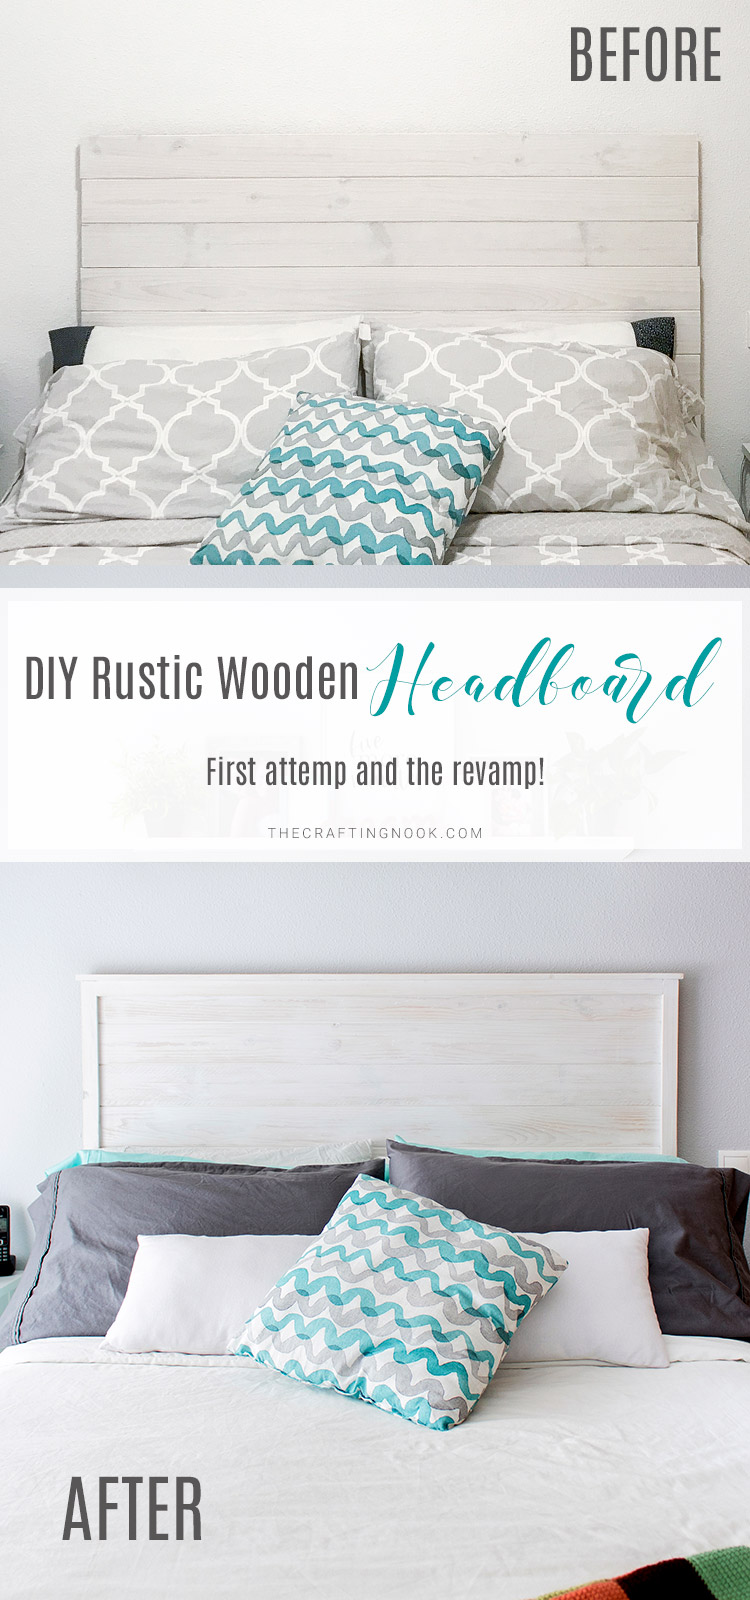 Inexpensive DIY Rustic Wooden Headboard